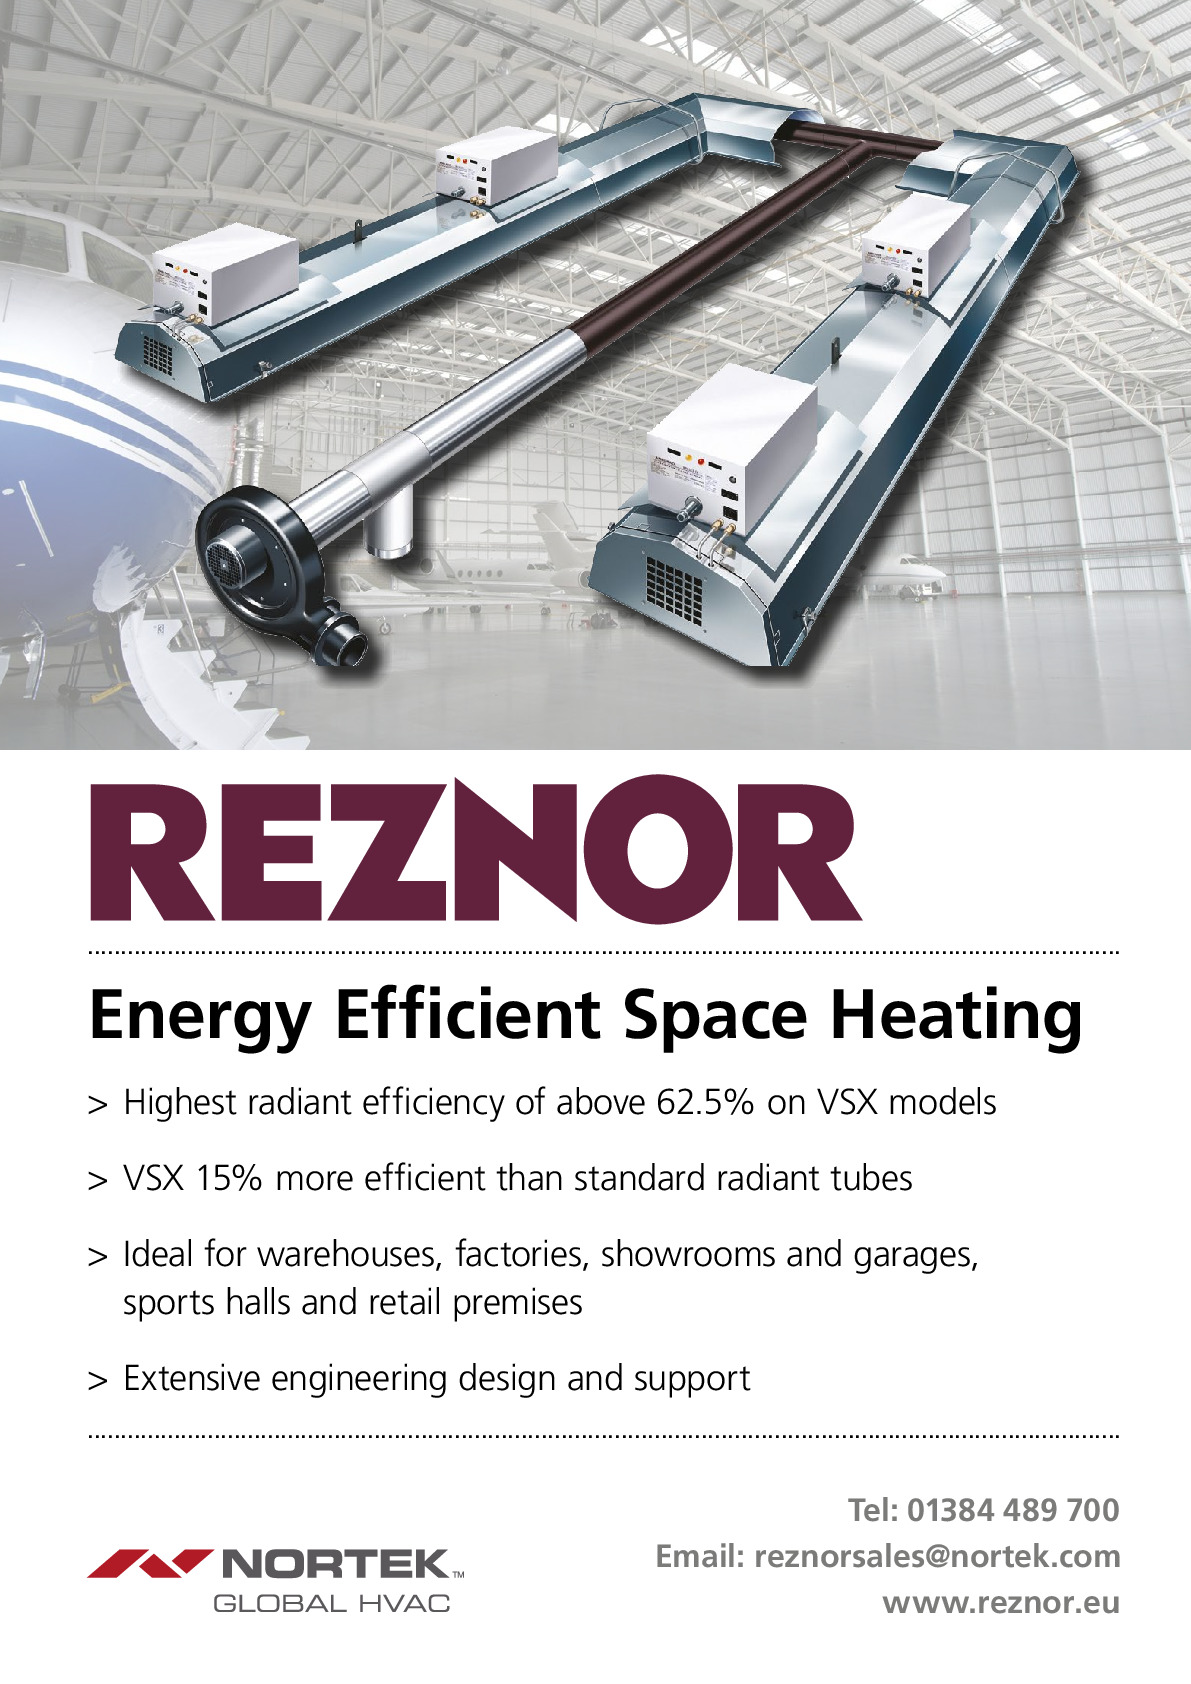 Reznor (a Division Of Nortek Global Hvac) advertisement 2 thumbnail